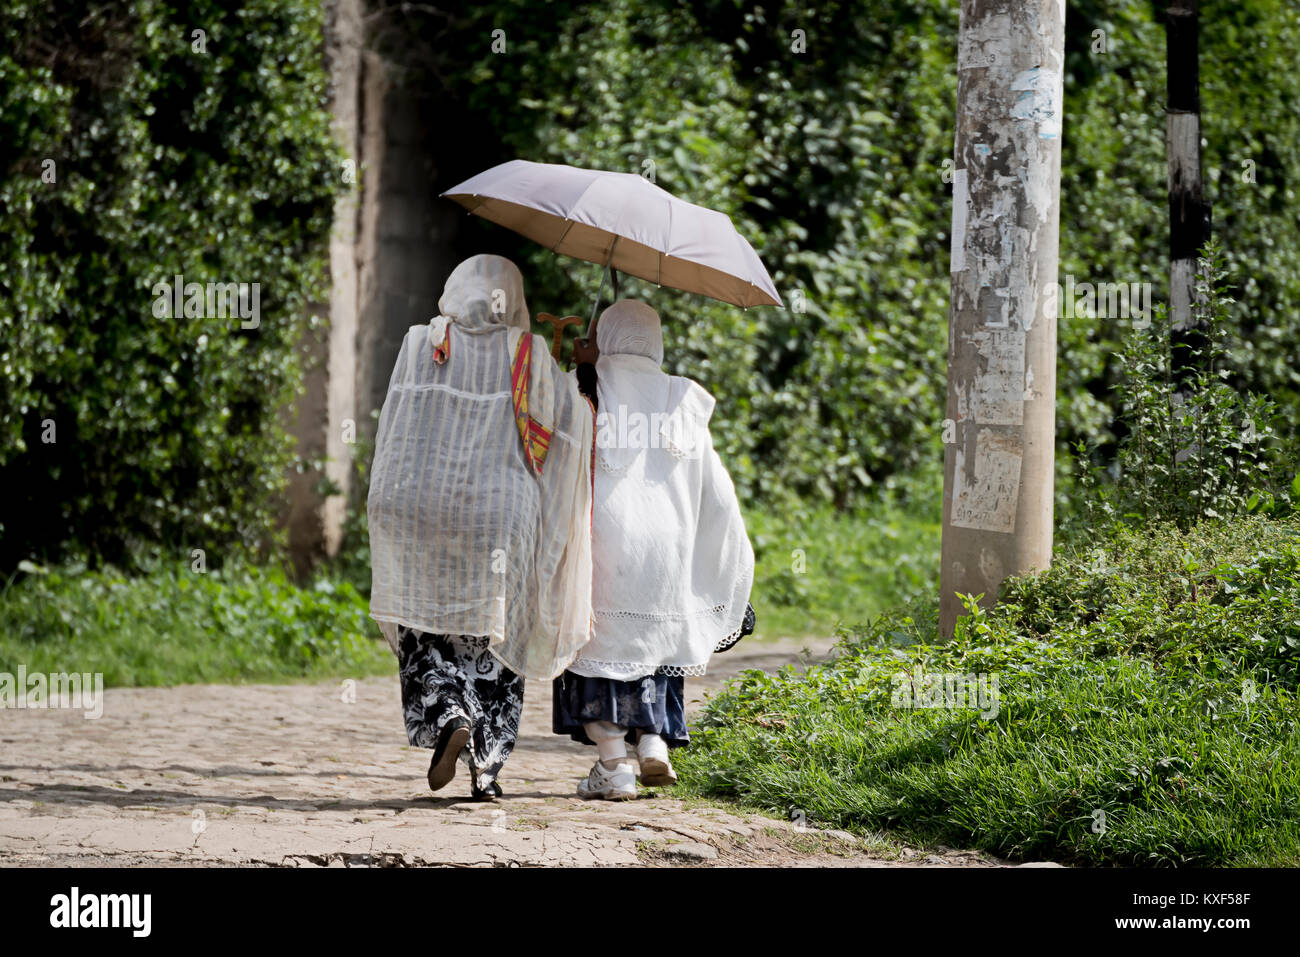 Two Ethiopian Orthodox women wearing white capes heading towards church with umbrella in Addis Ababa Ethiopia - Stock Image